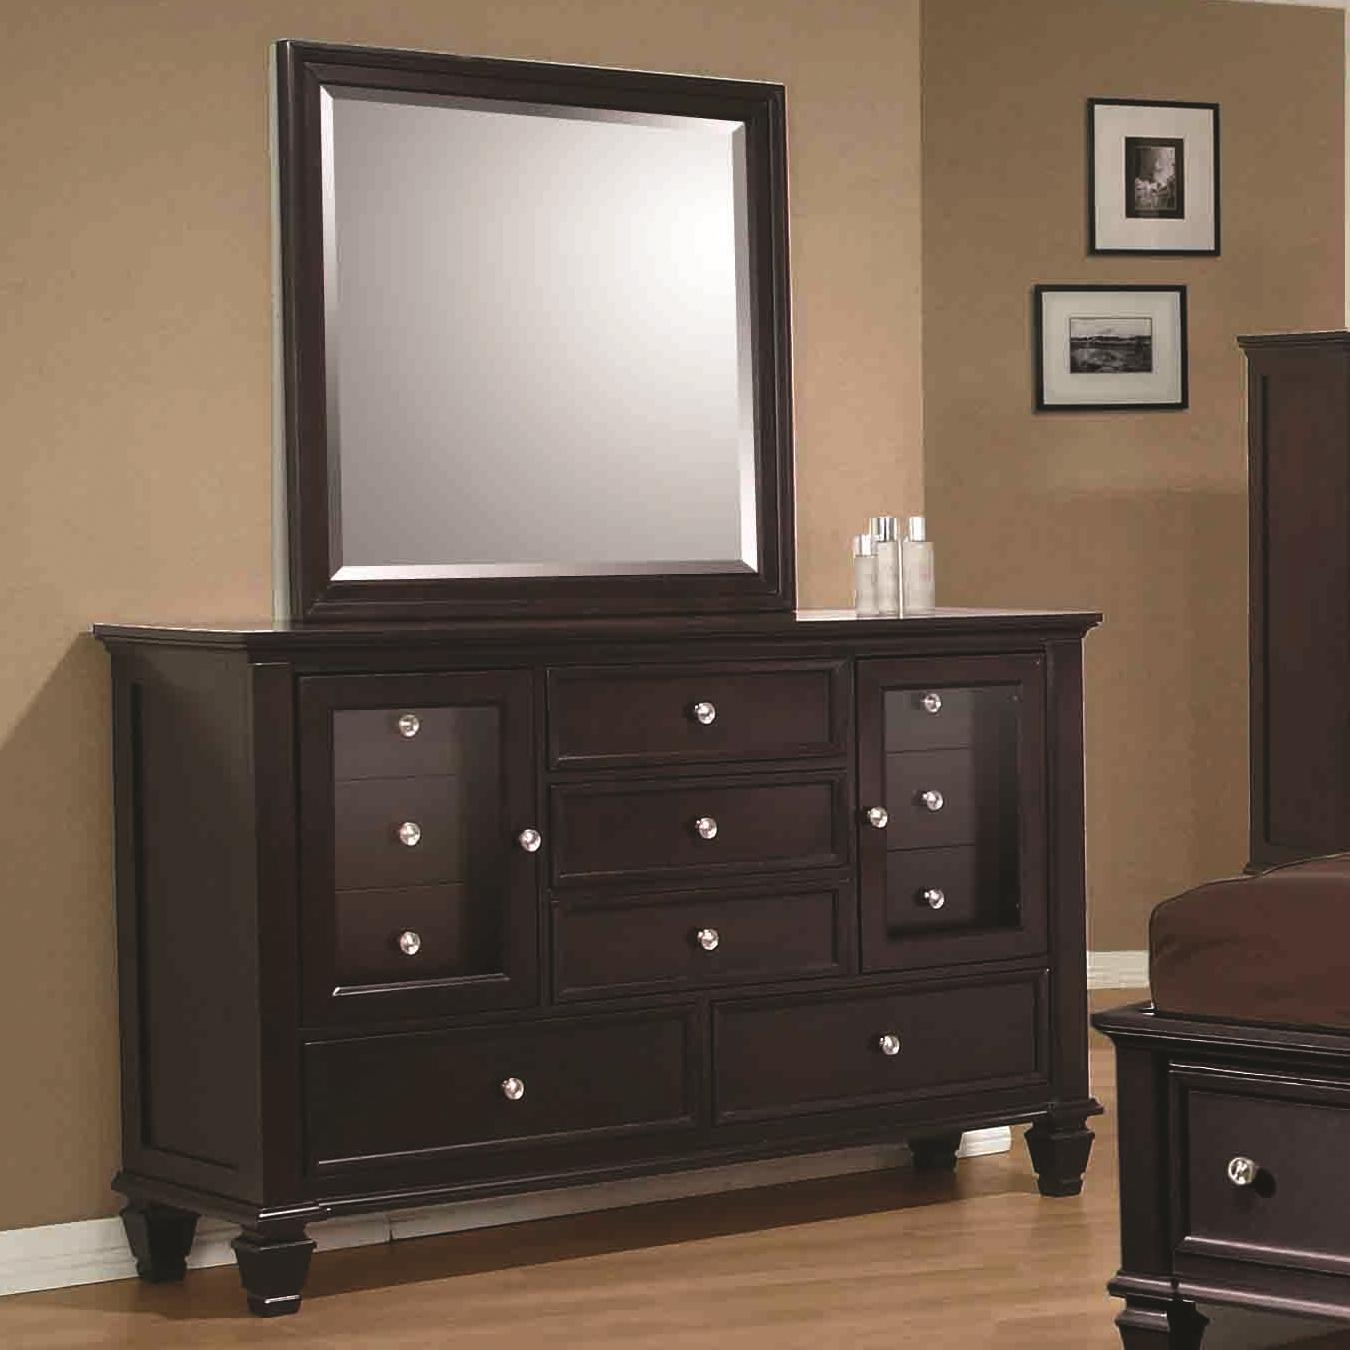 Rug Depot Outlet Emeryville Ca Bedroom Furniture